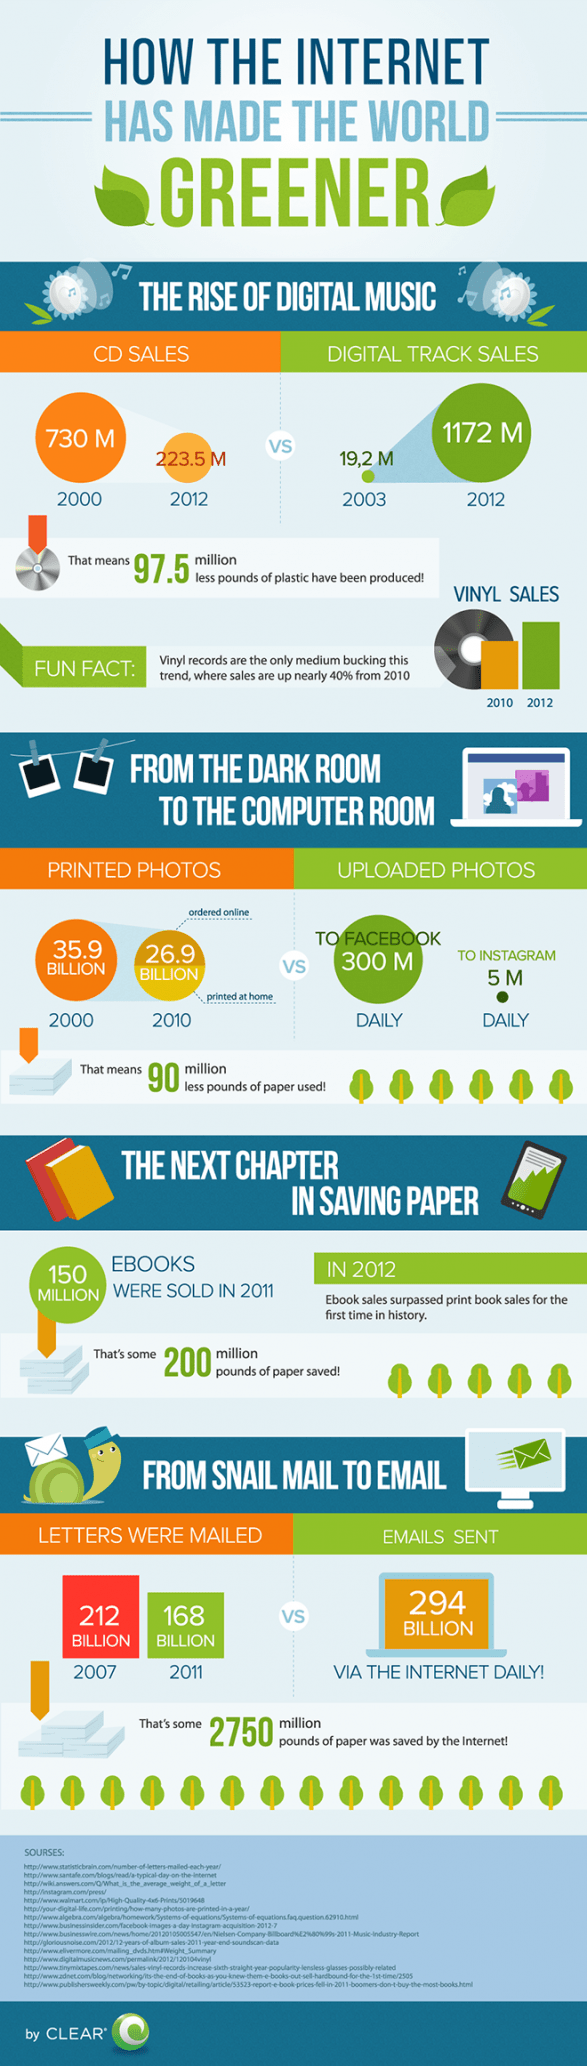 How the Internet Has Made The World Greener